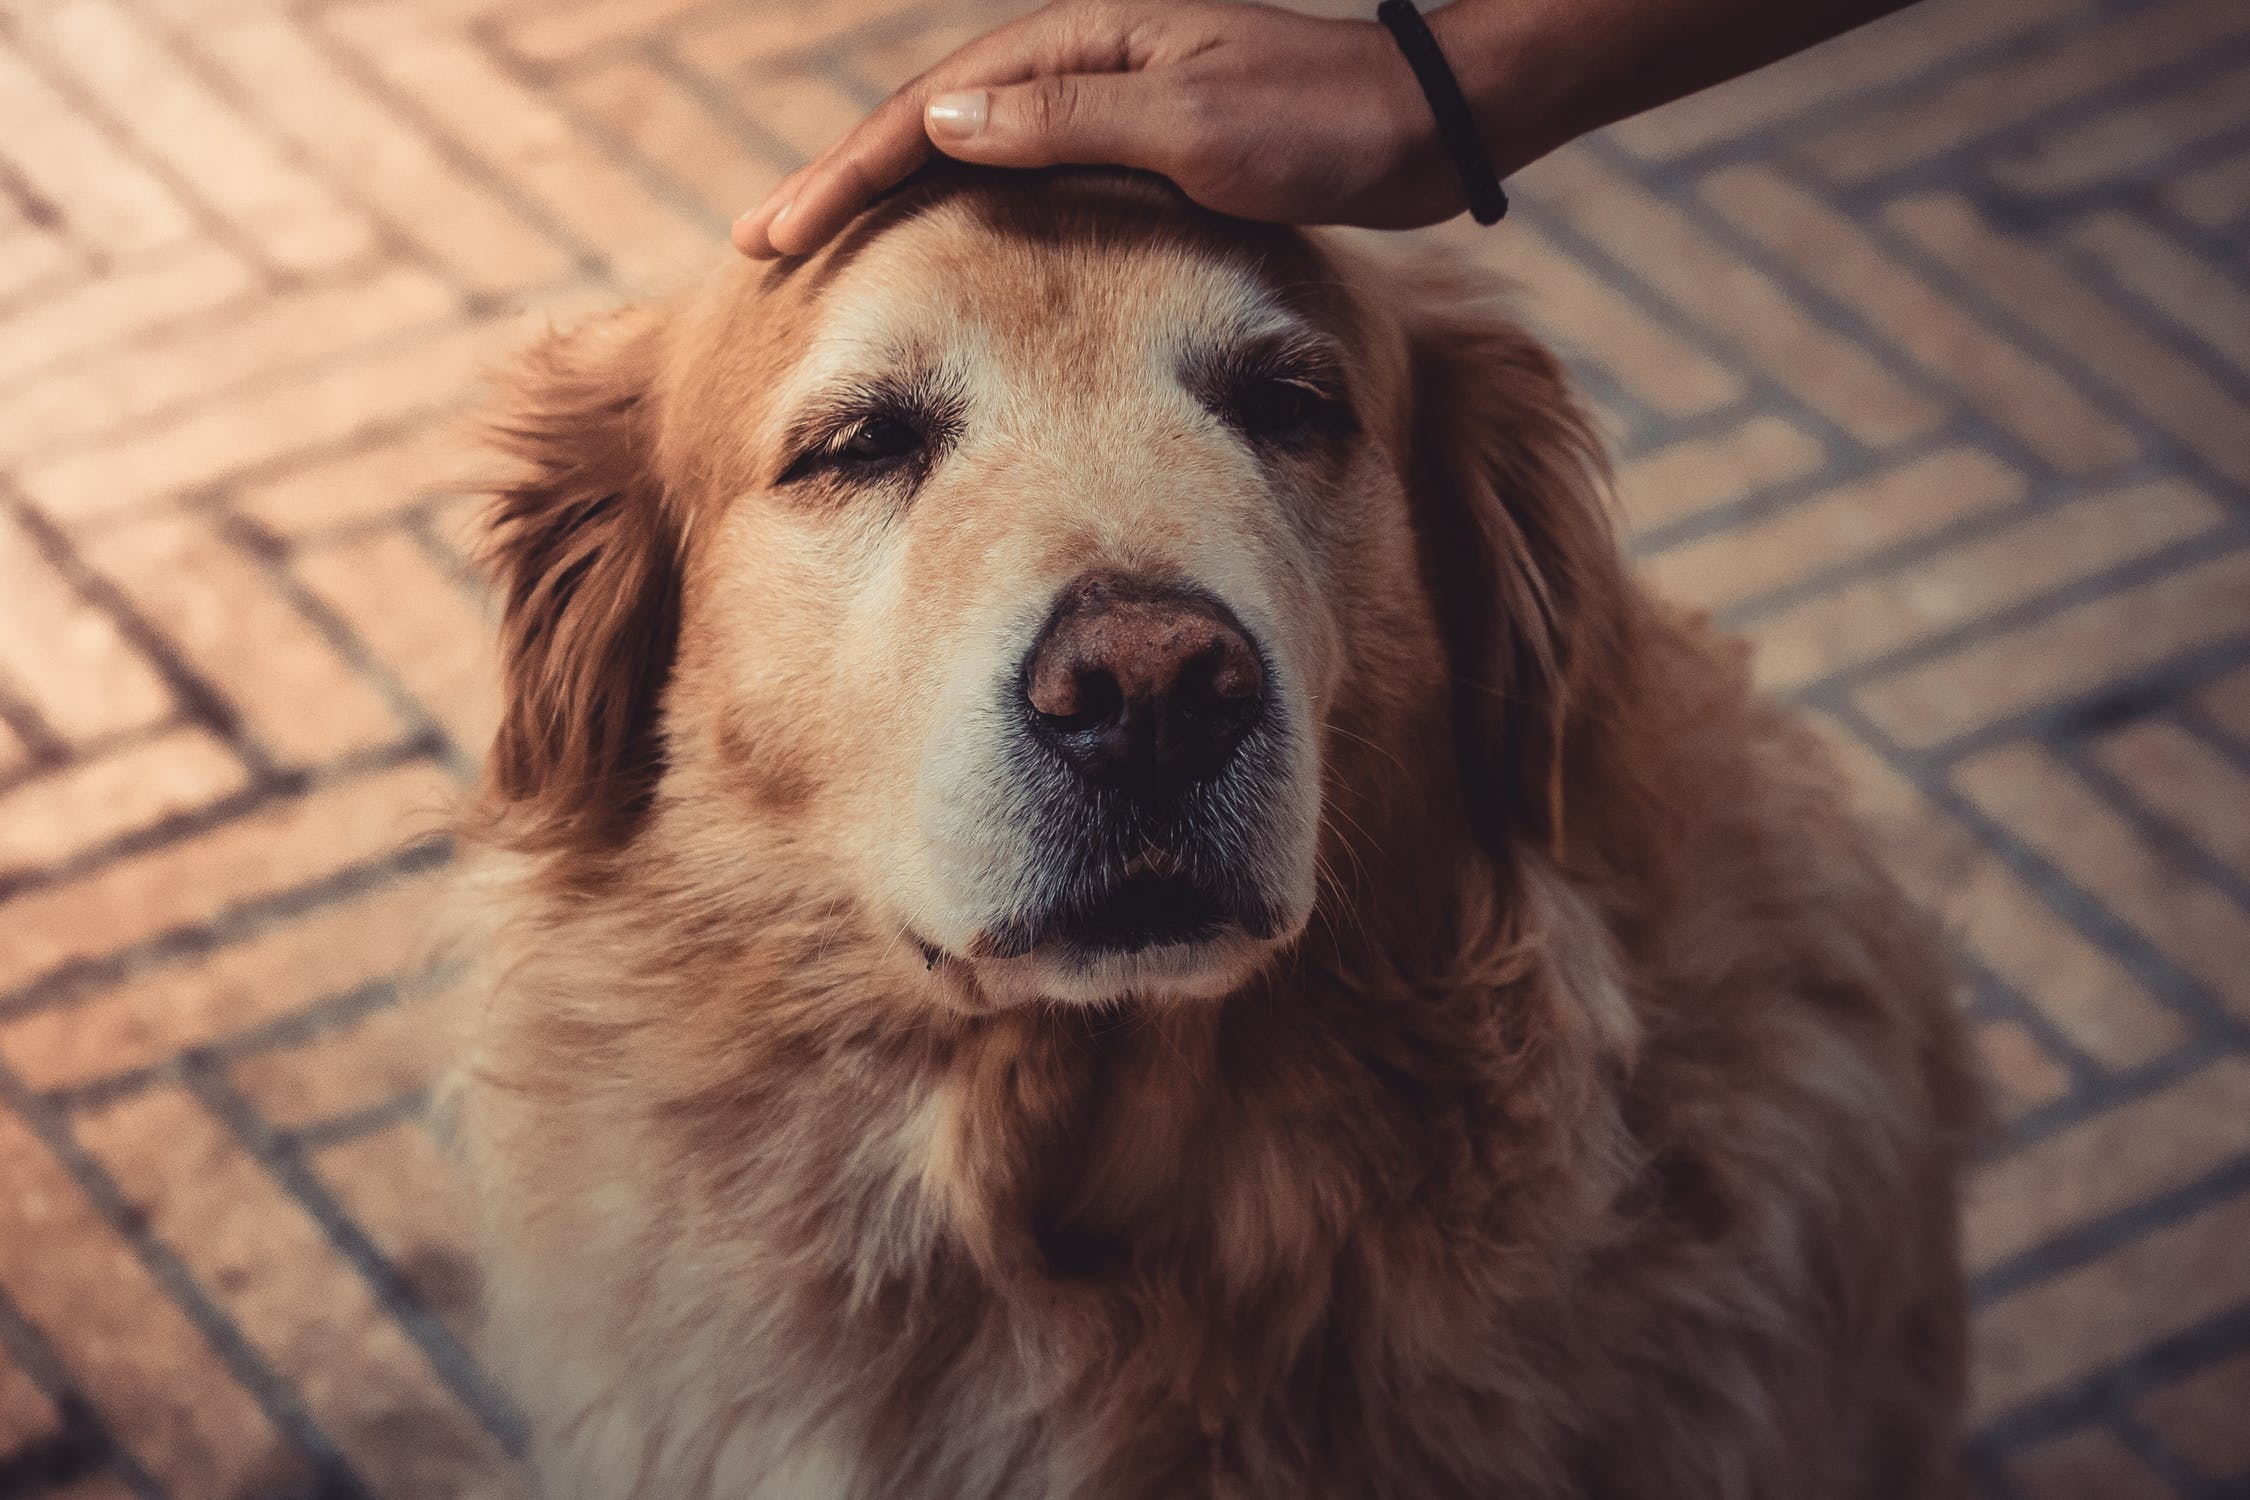 Caring for Pets During Natural Disasters